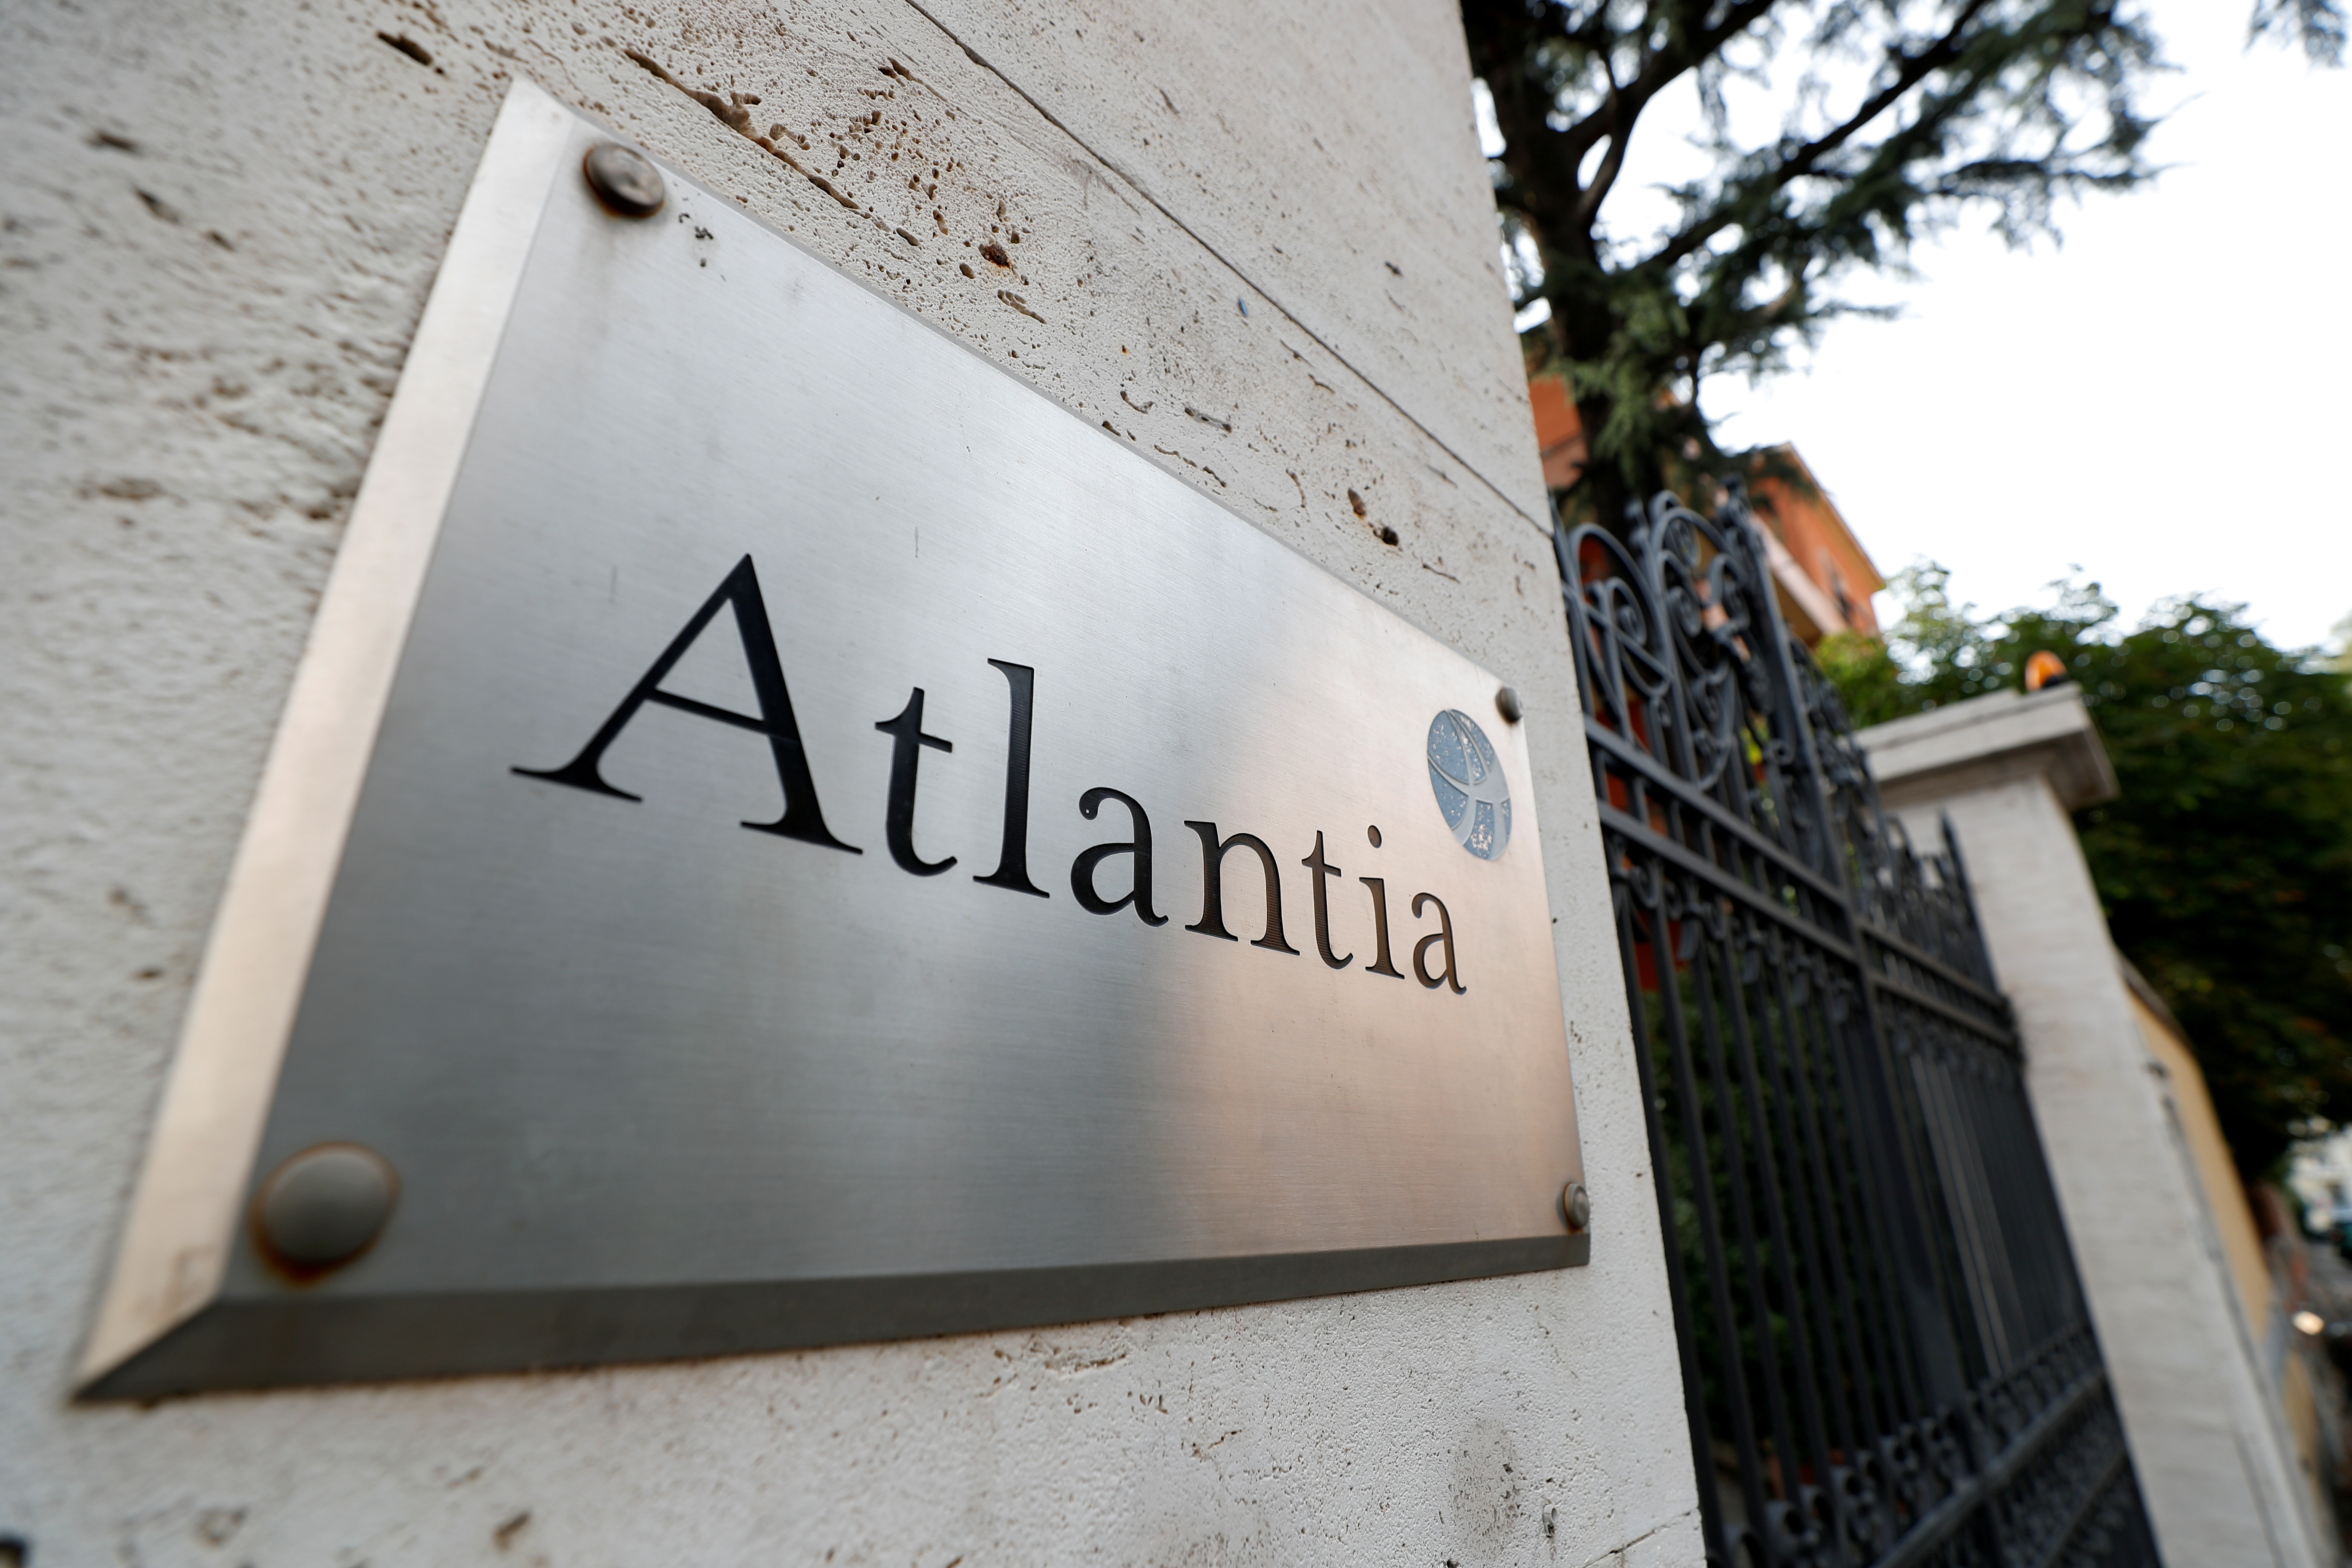 The logo of Italian infrastructure group Atlantia is seen outside its headquarters in Rome, Italy, October 5, 2020. REUTERS/Guglielmo Mangiapane